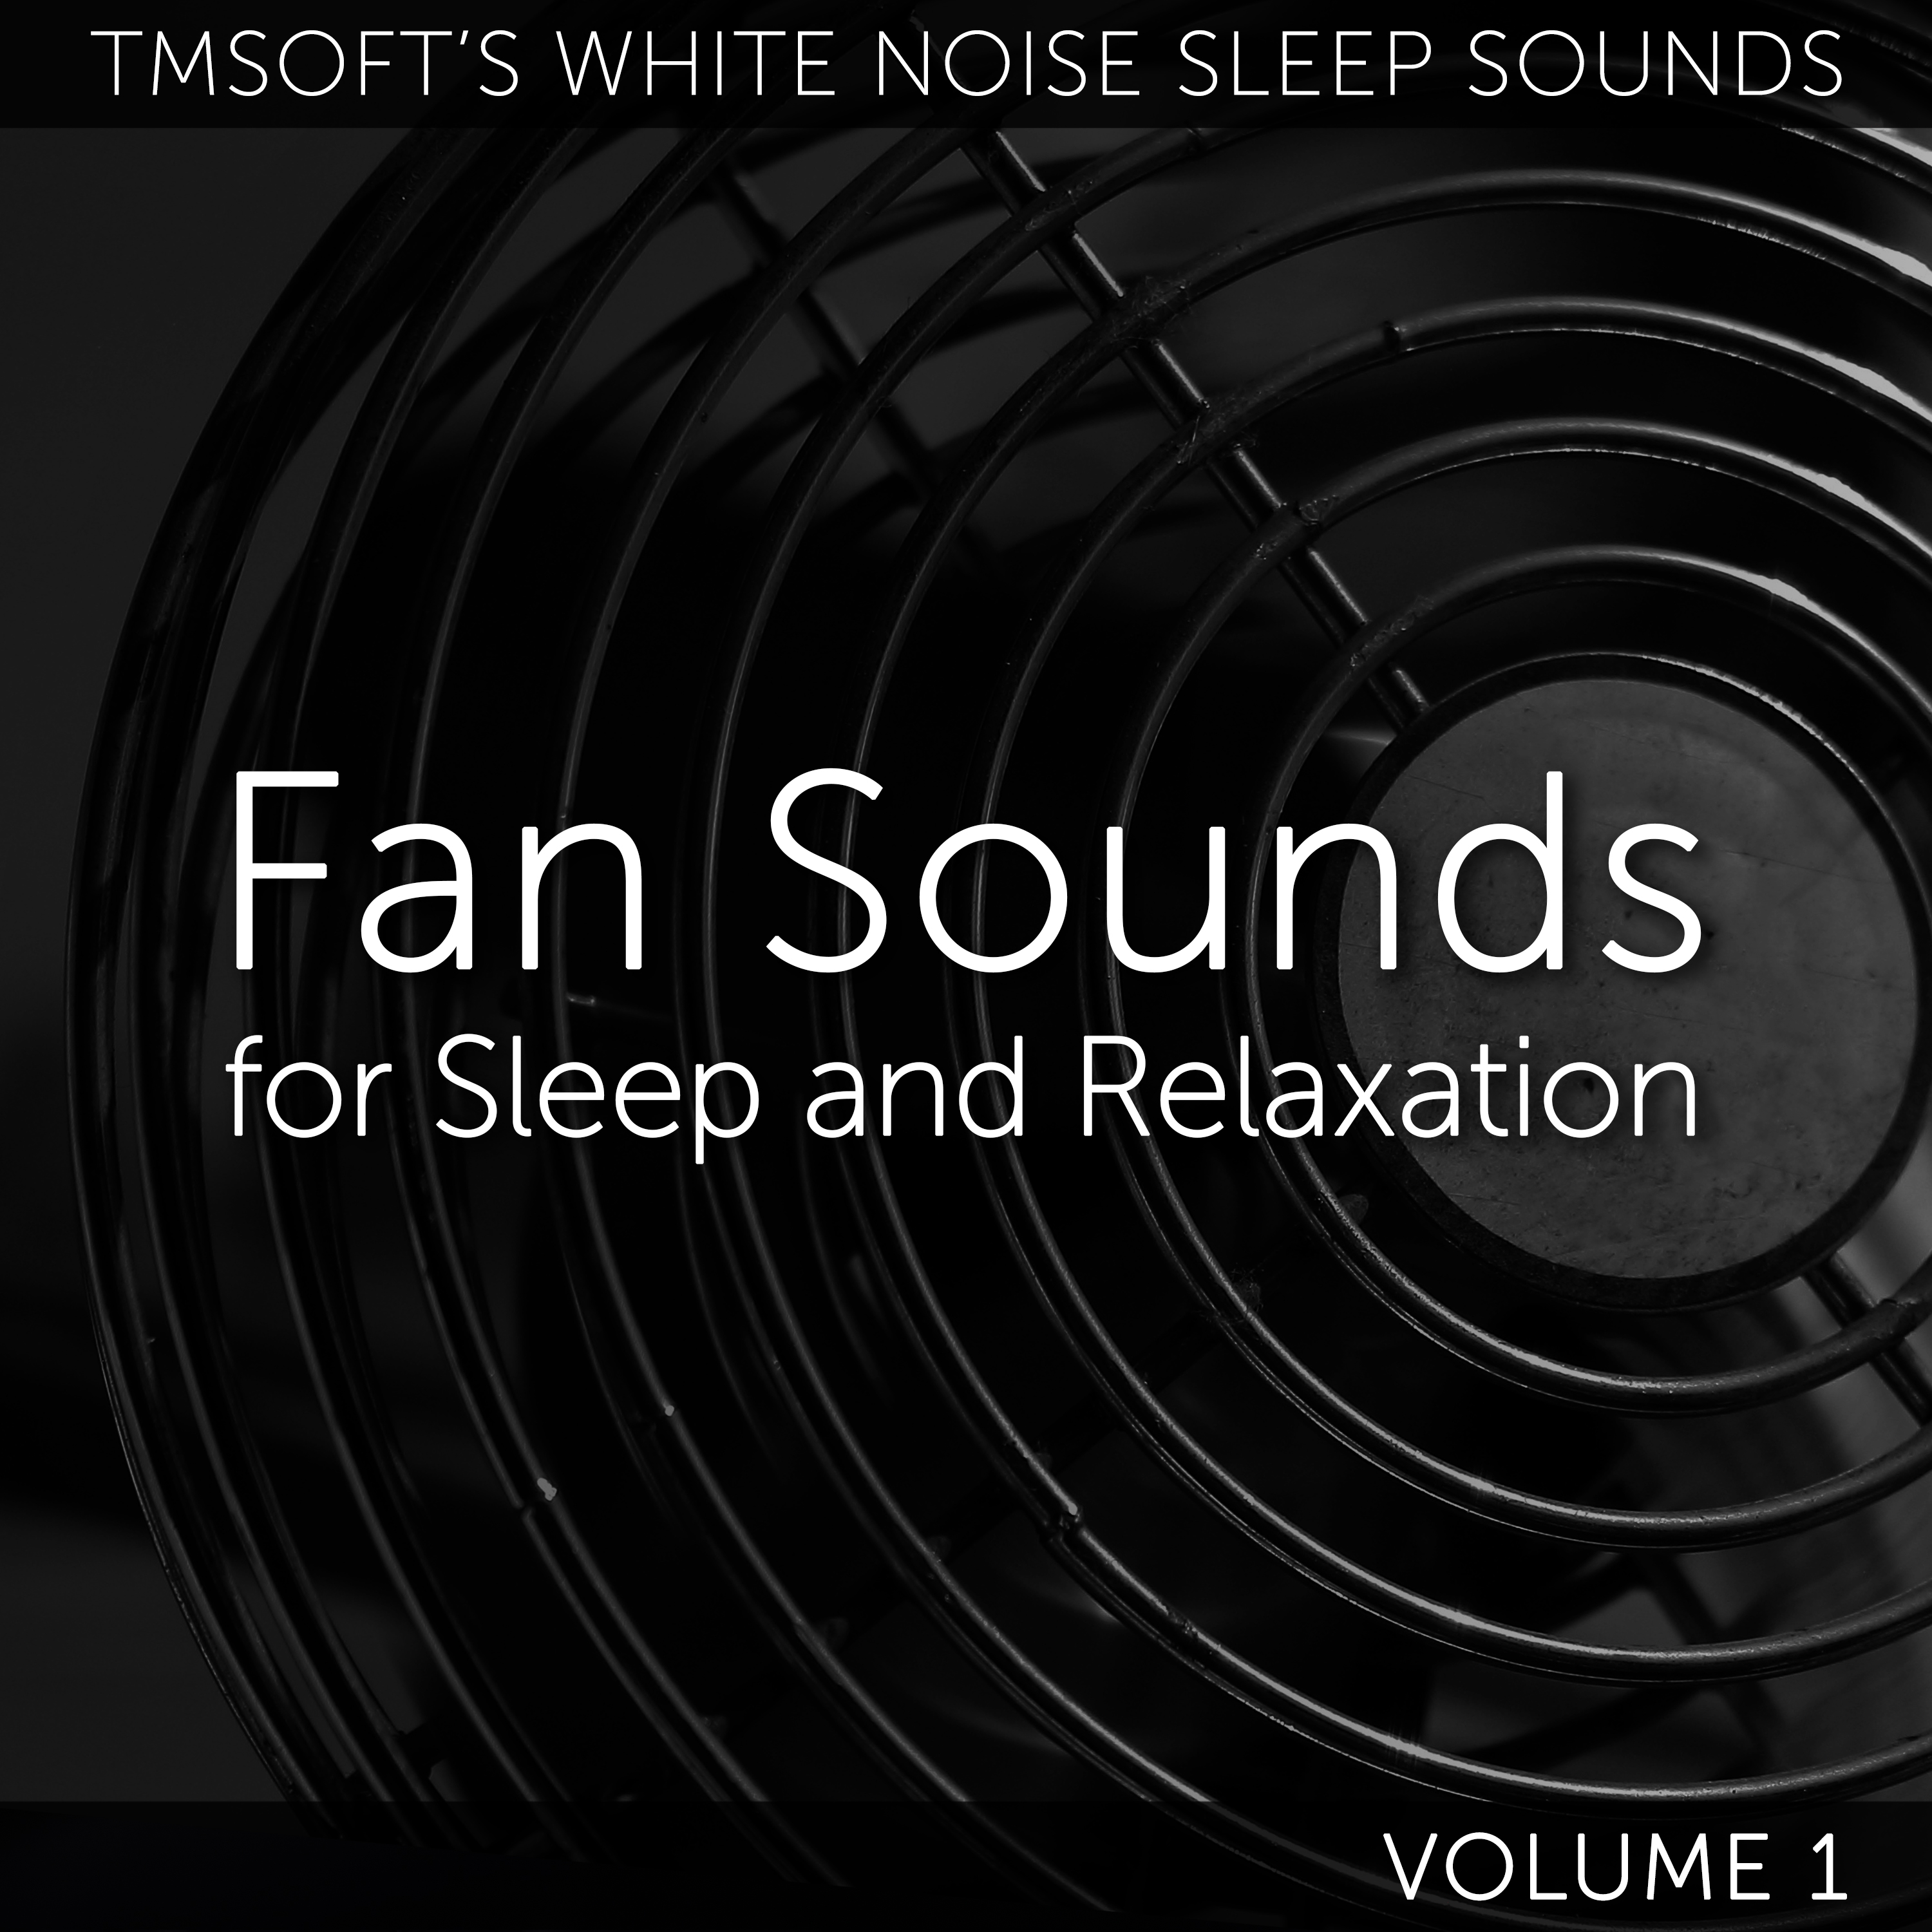 Fan Sounds for Sleep and Relaxation Volume 1 Album Cover